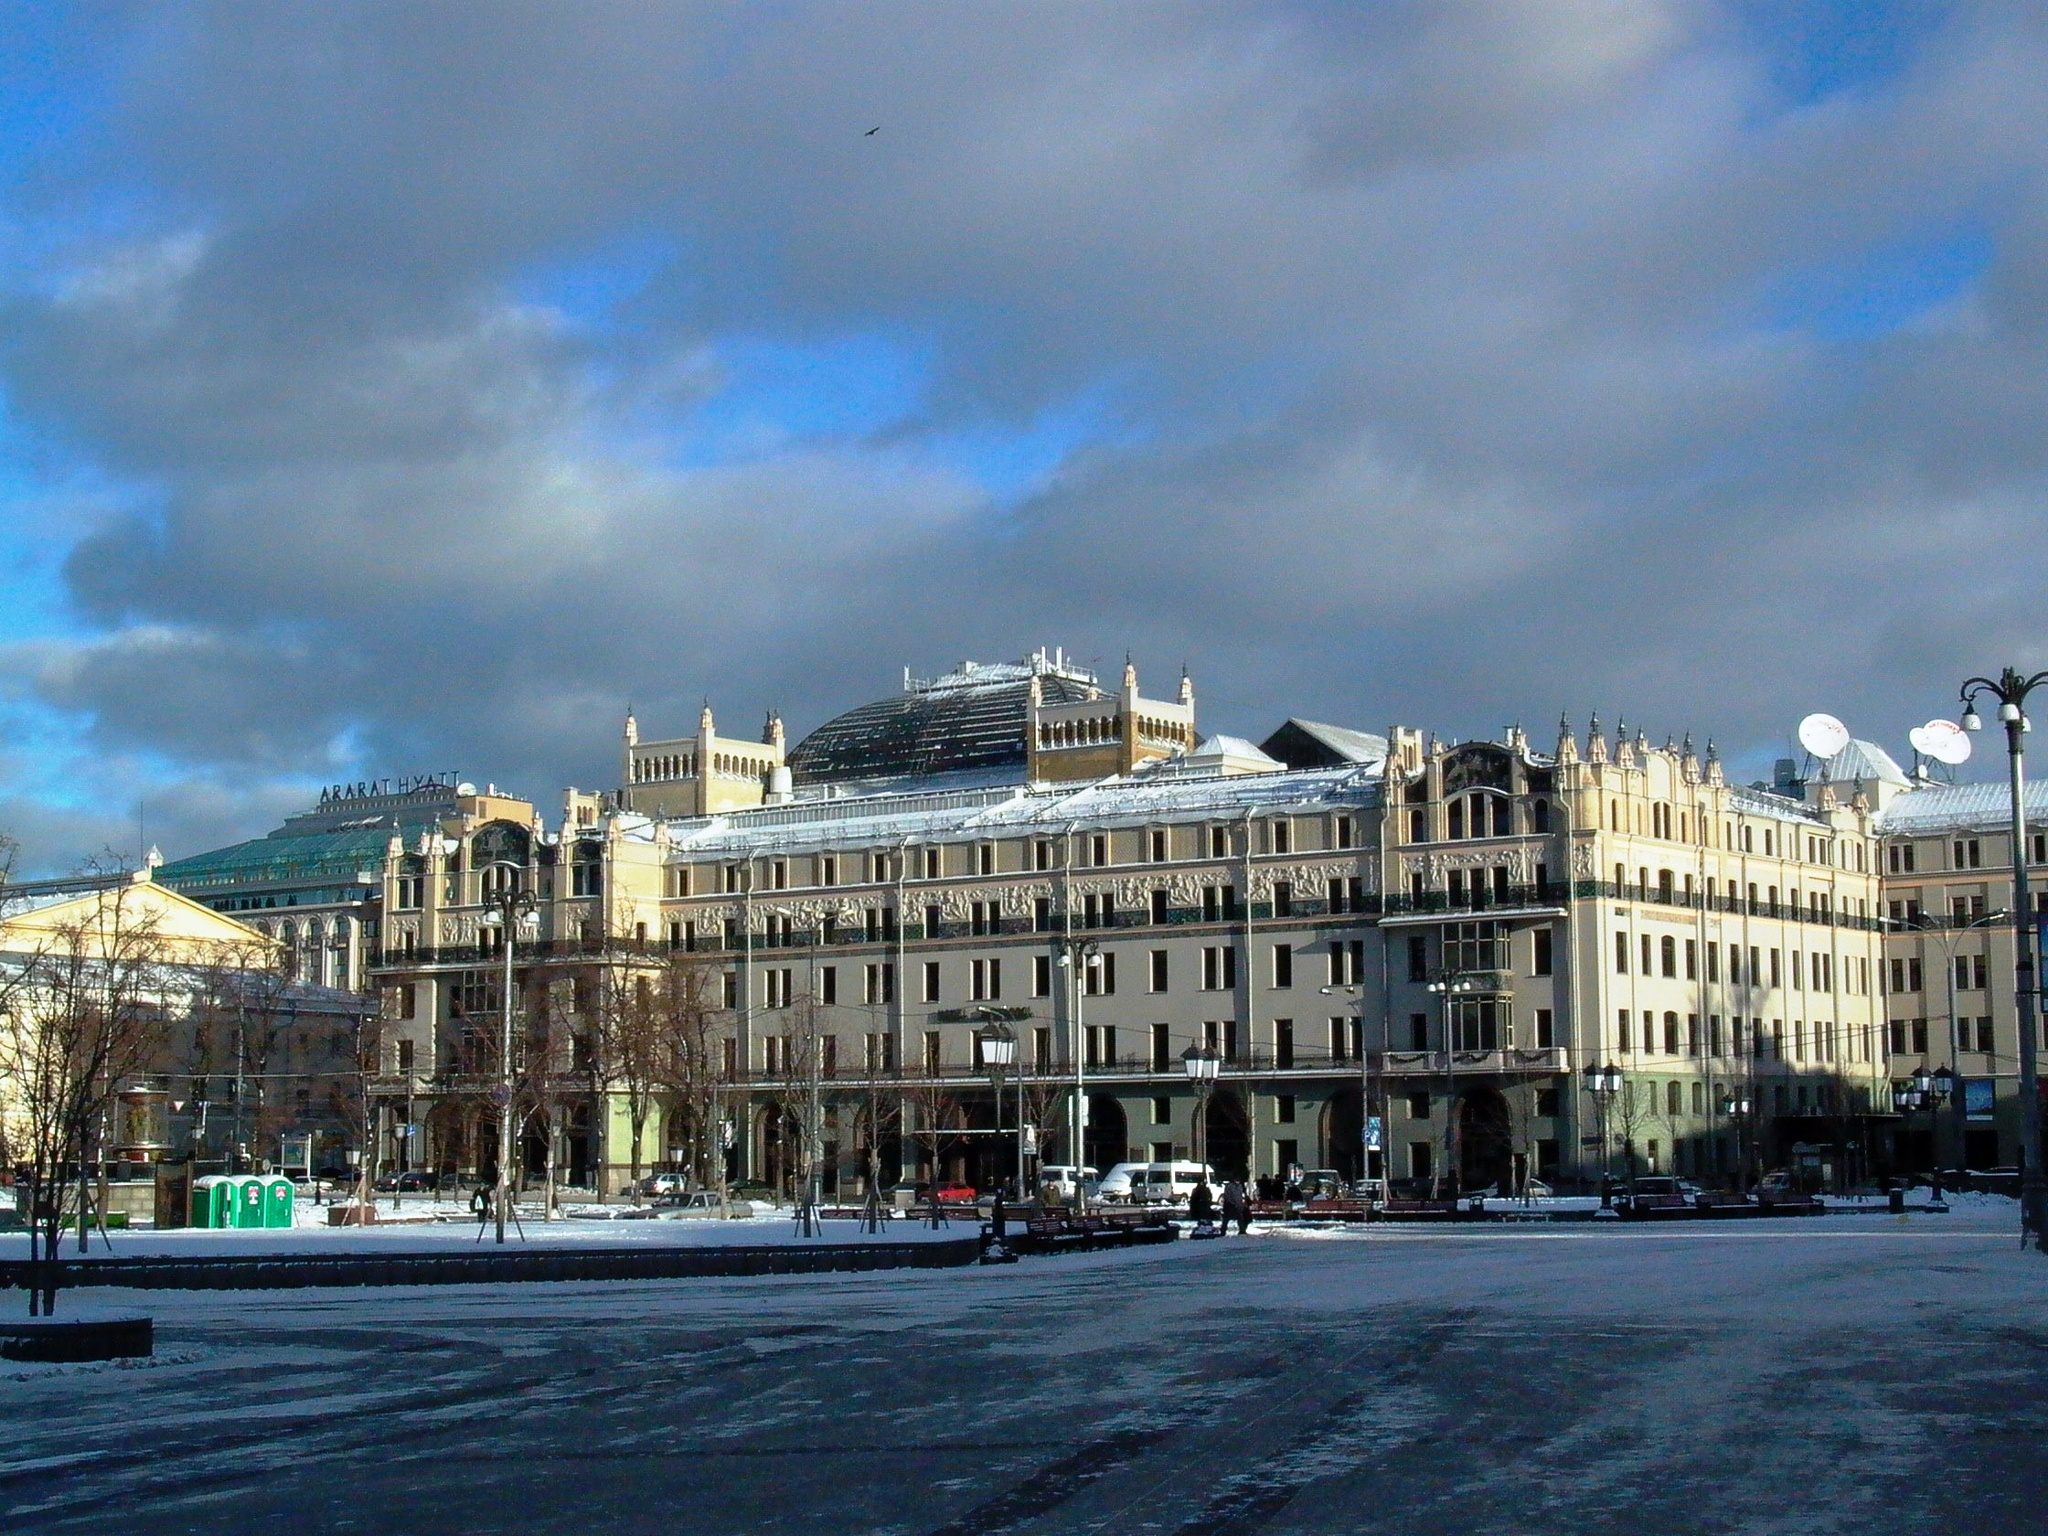 Moscow Metropole Hotel in the sun by leo.vleugels.3